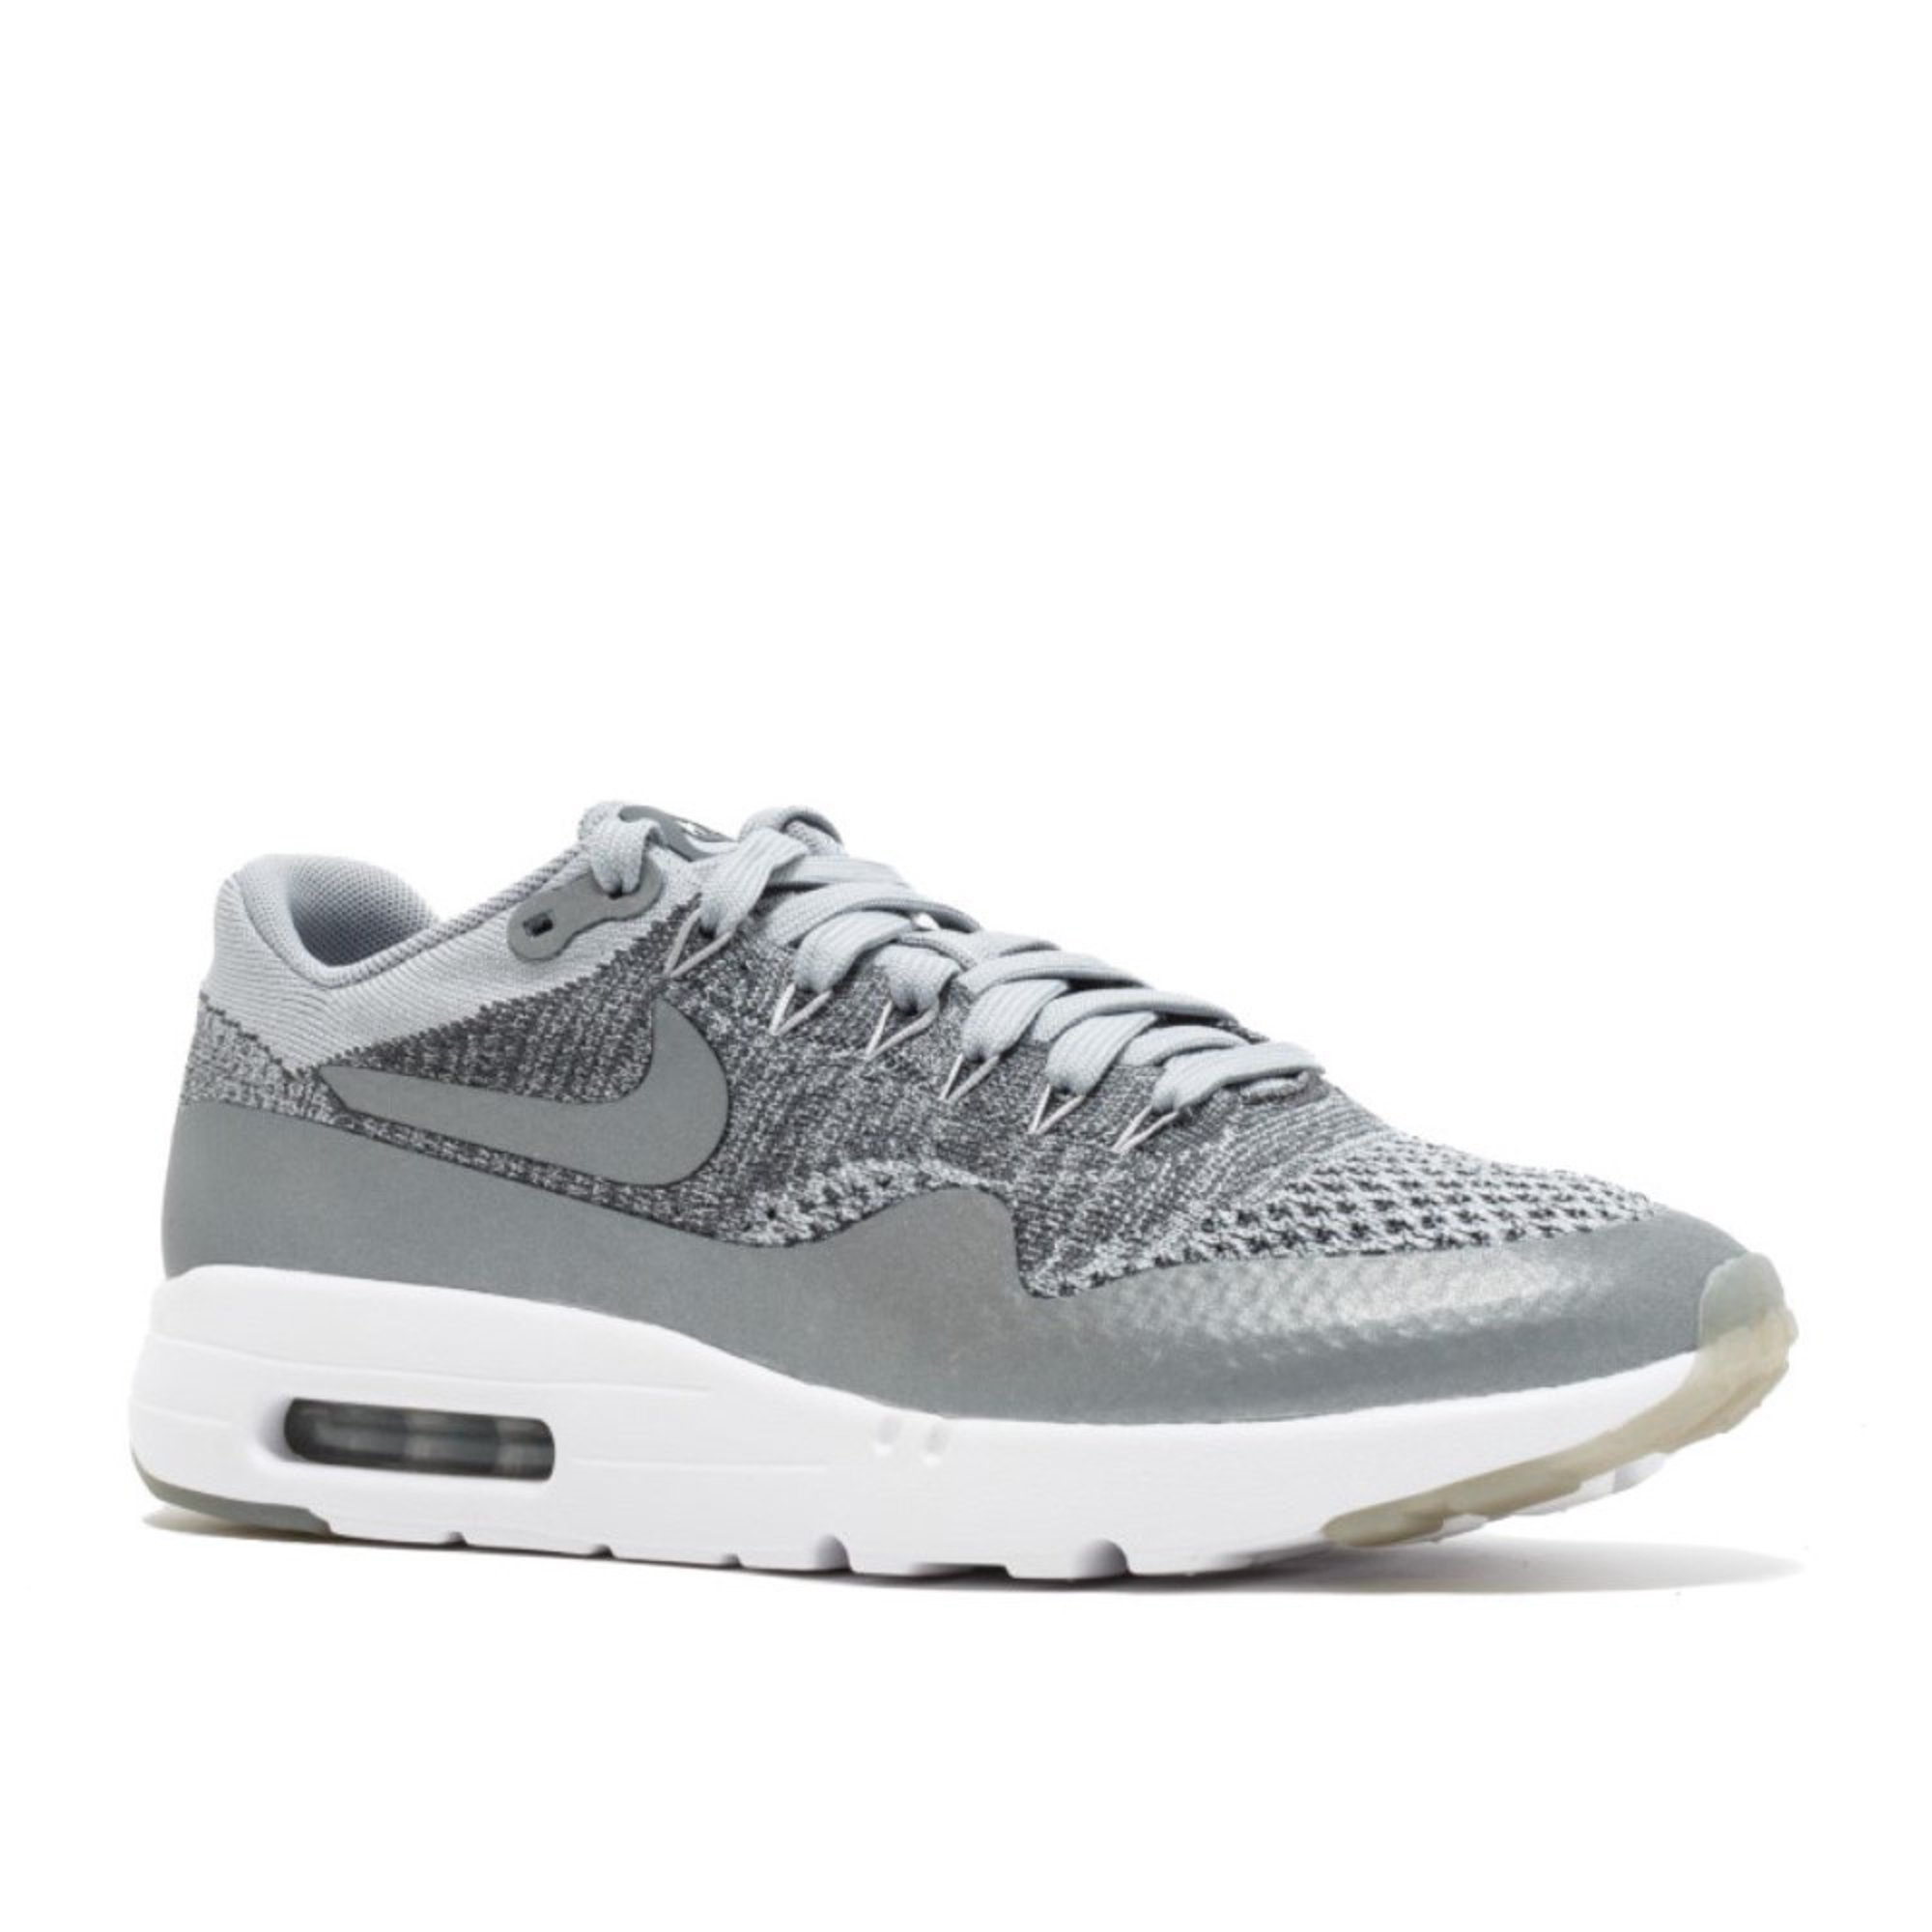 best loved ab908 c183a Nike - Men - Nike Air Max 1 Ultra Flyknit - 843384-001 ...